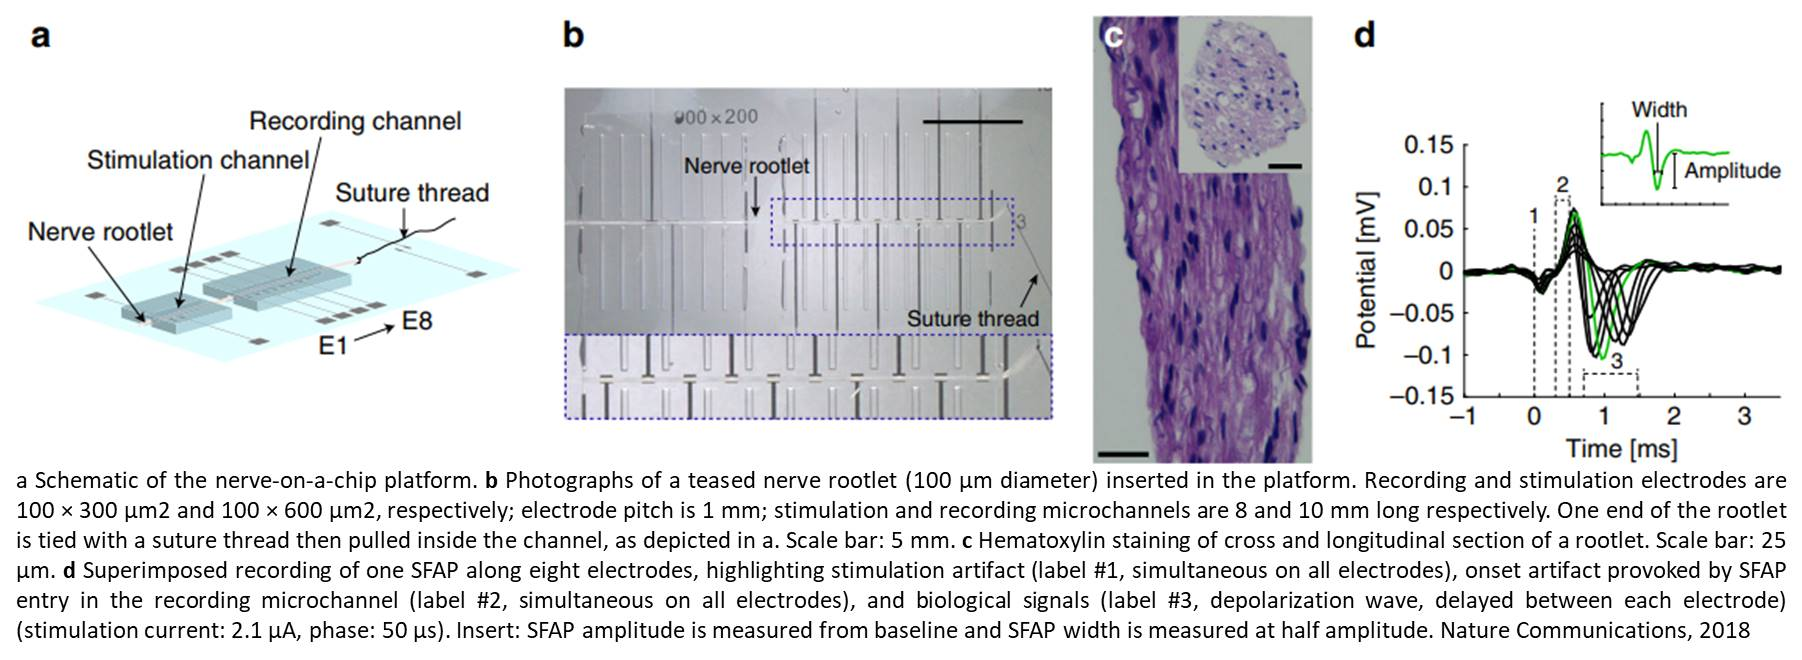 Nerve-on-a-chip platform for neural conductance measurement in explanted peripheral nerves